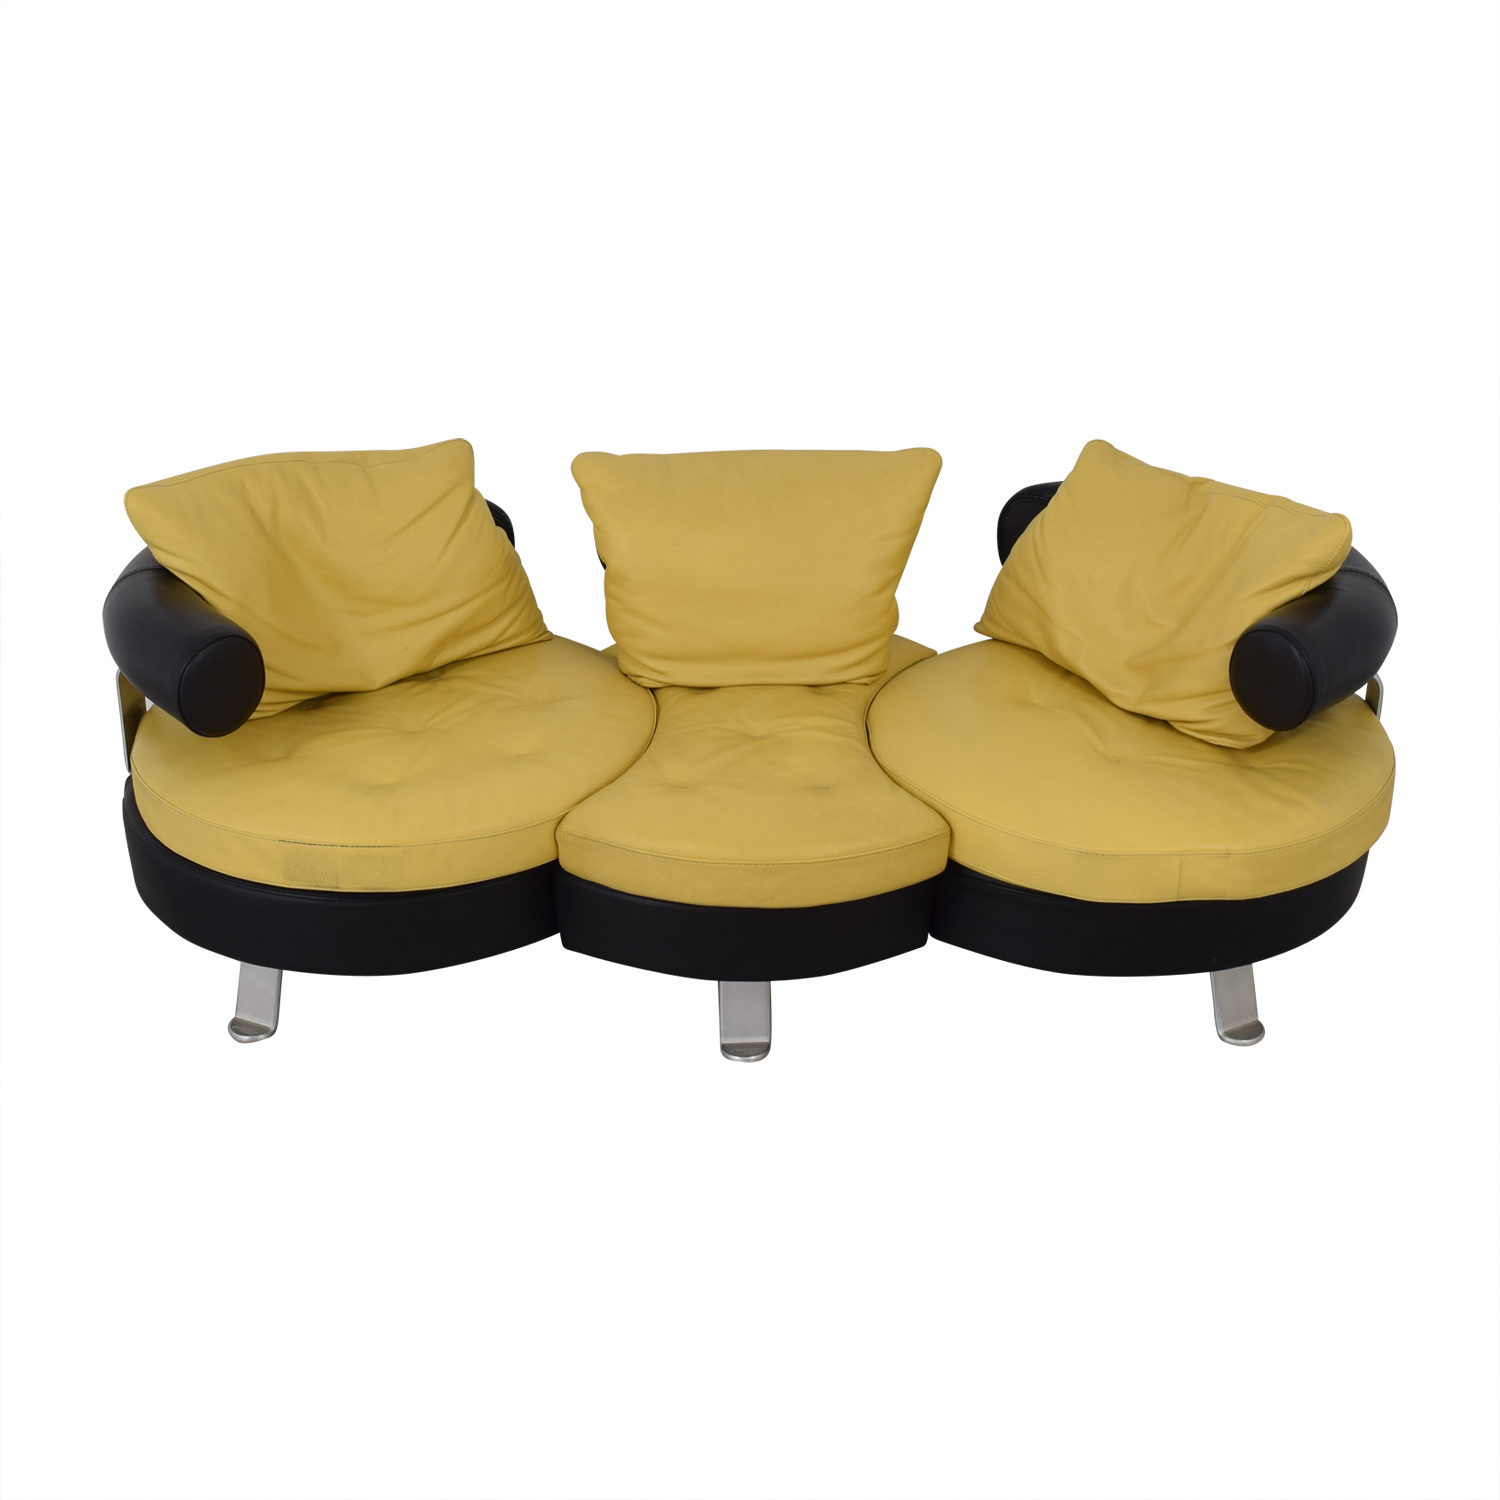 Formenti Formenti Formenti Divani Contemporary Original Swivel Sofa dimensions